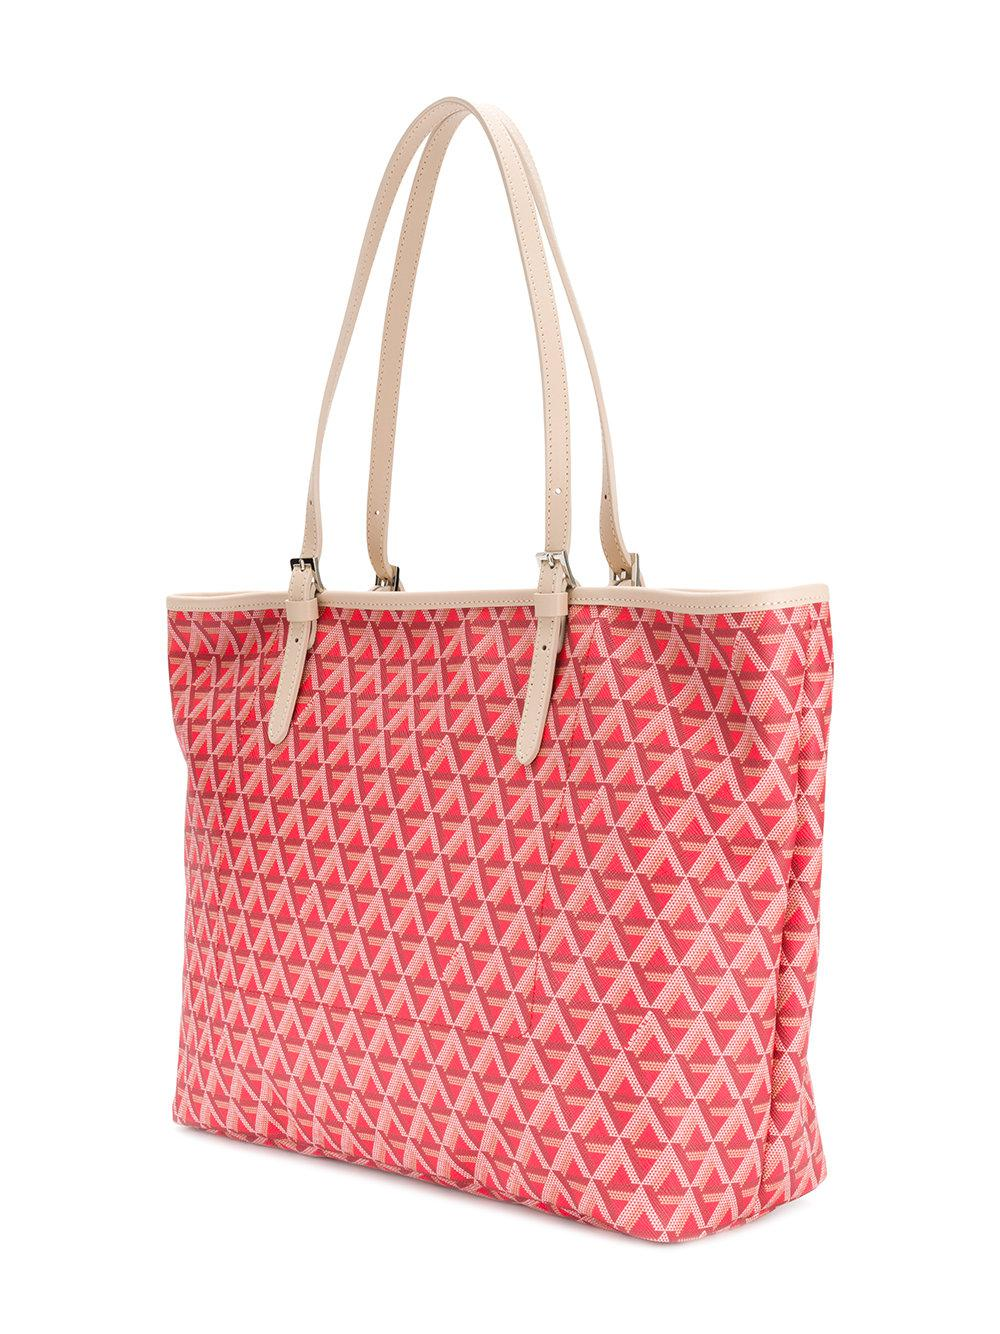 Lancaster Leather Geometric Pattern Tote in Red